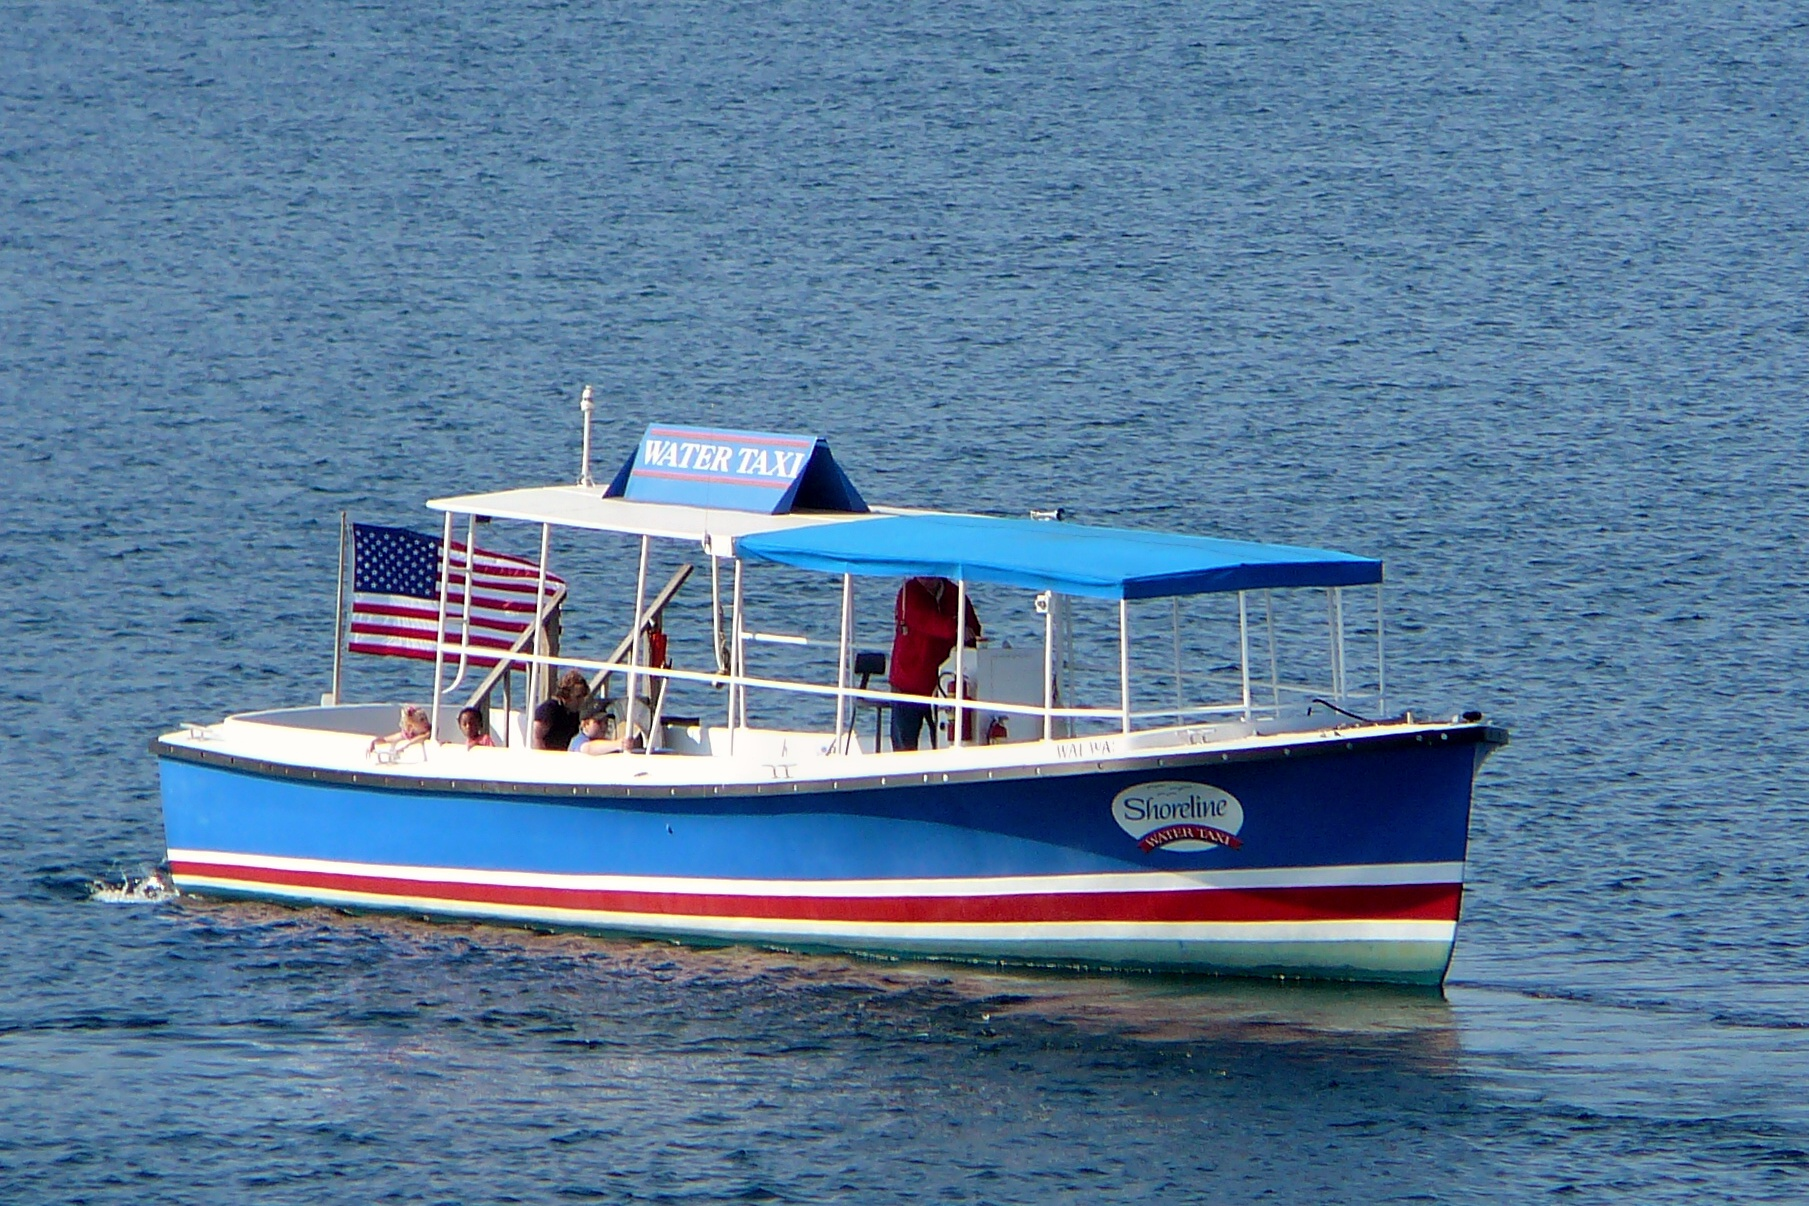 Shoreline Cruises Water Taxi